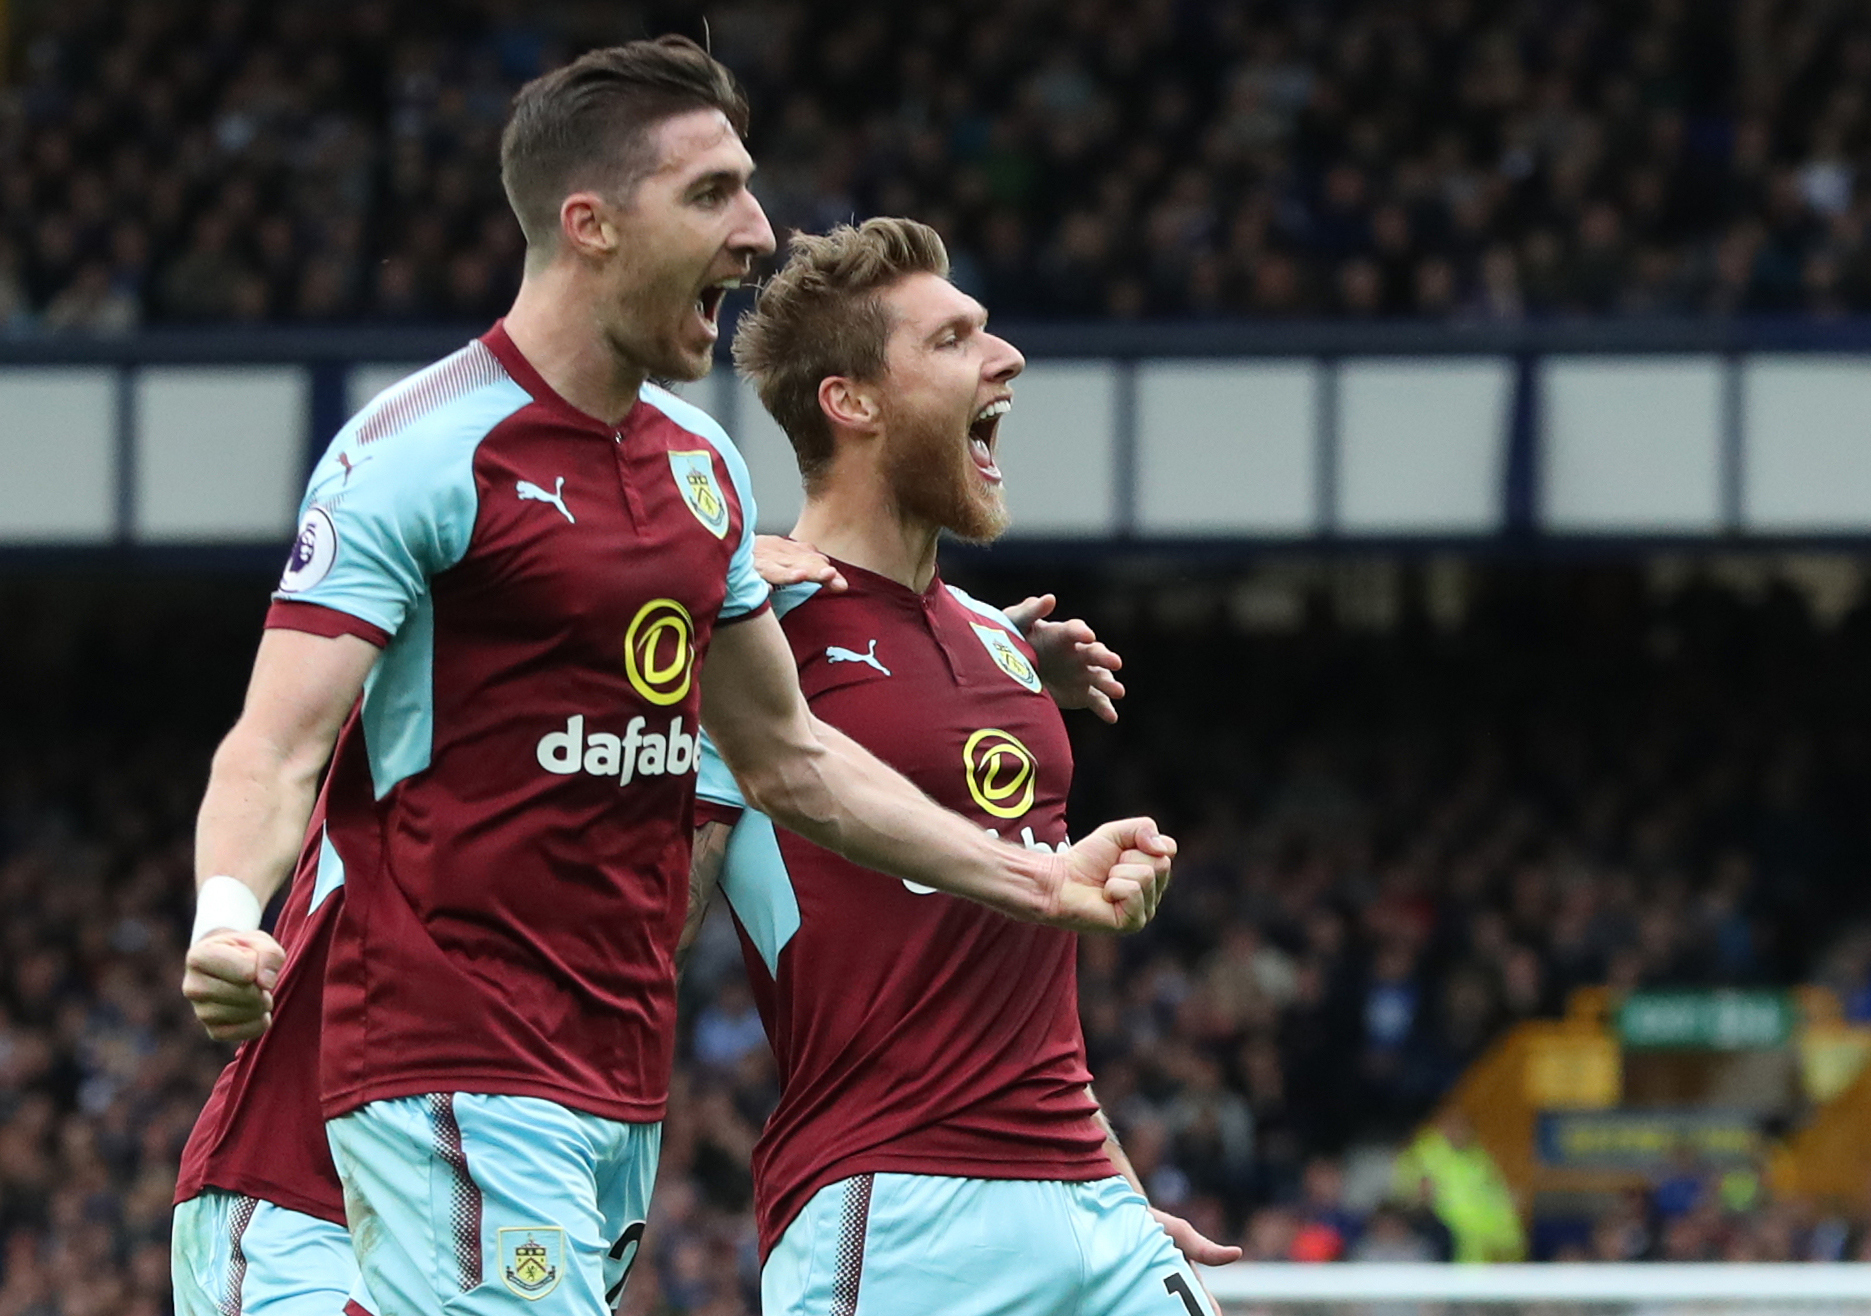 Burnley could move a step closer to a place in Europe by doing the double over Everton on Saturday